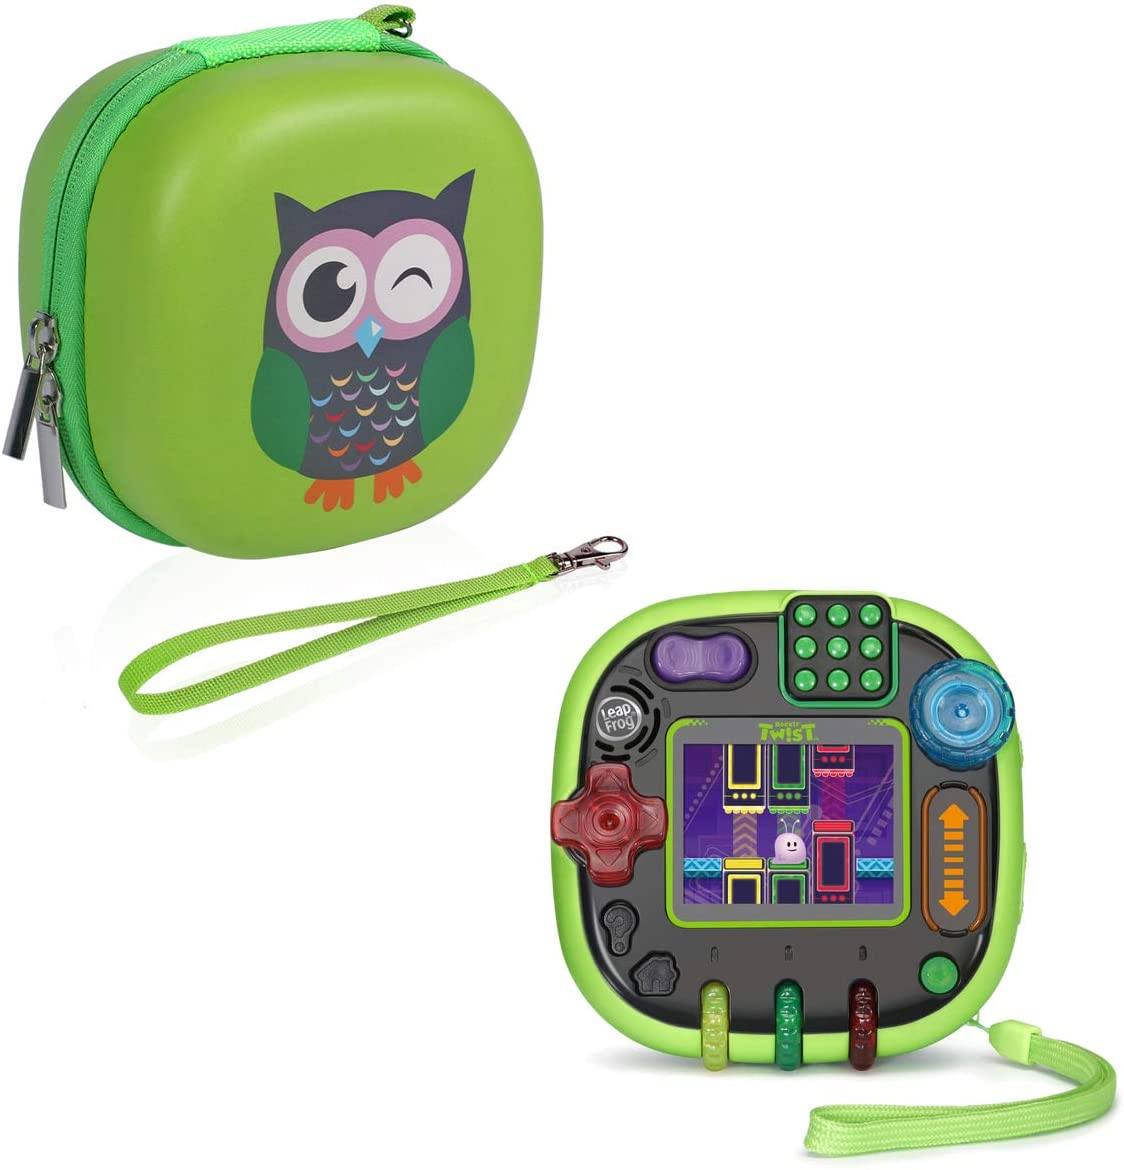 Simumu Hard Lovely Carrying Case for Leapfrog Rockit Twist Handheld Learning Game and Accessories-Waterproof, Drop Resistant, Portable(Green)